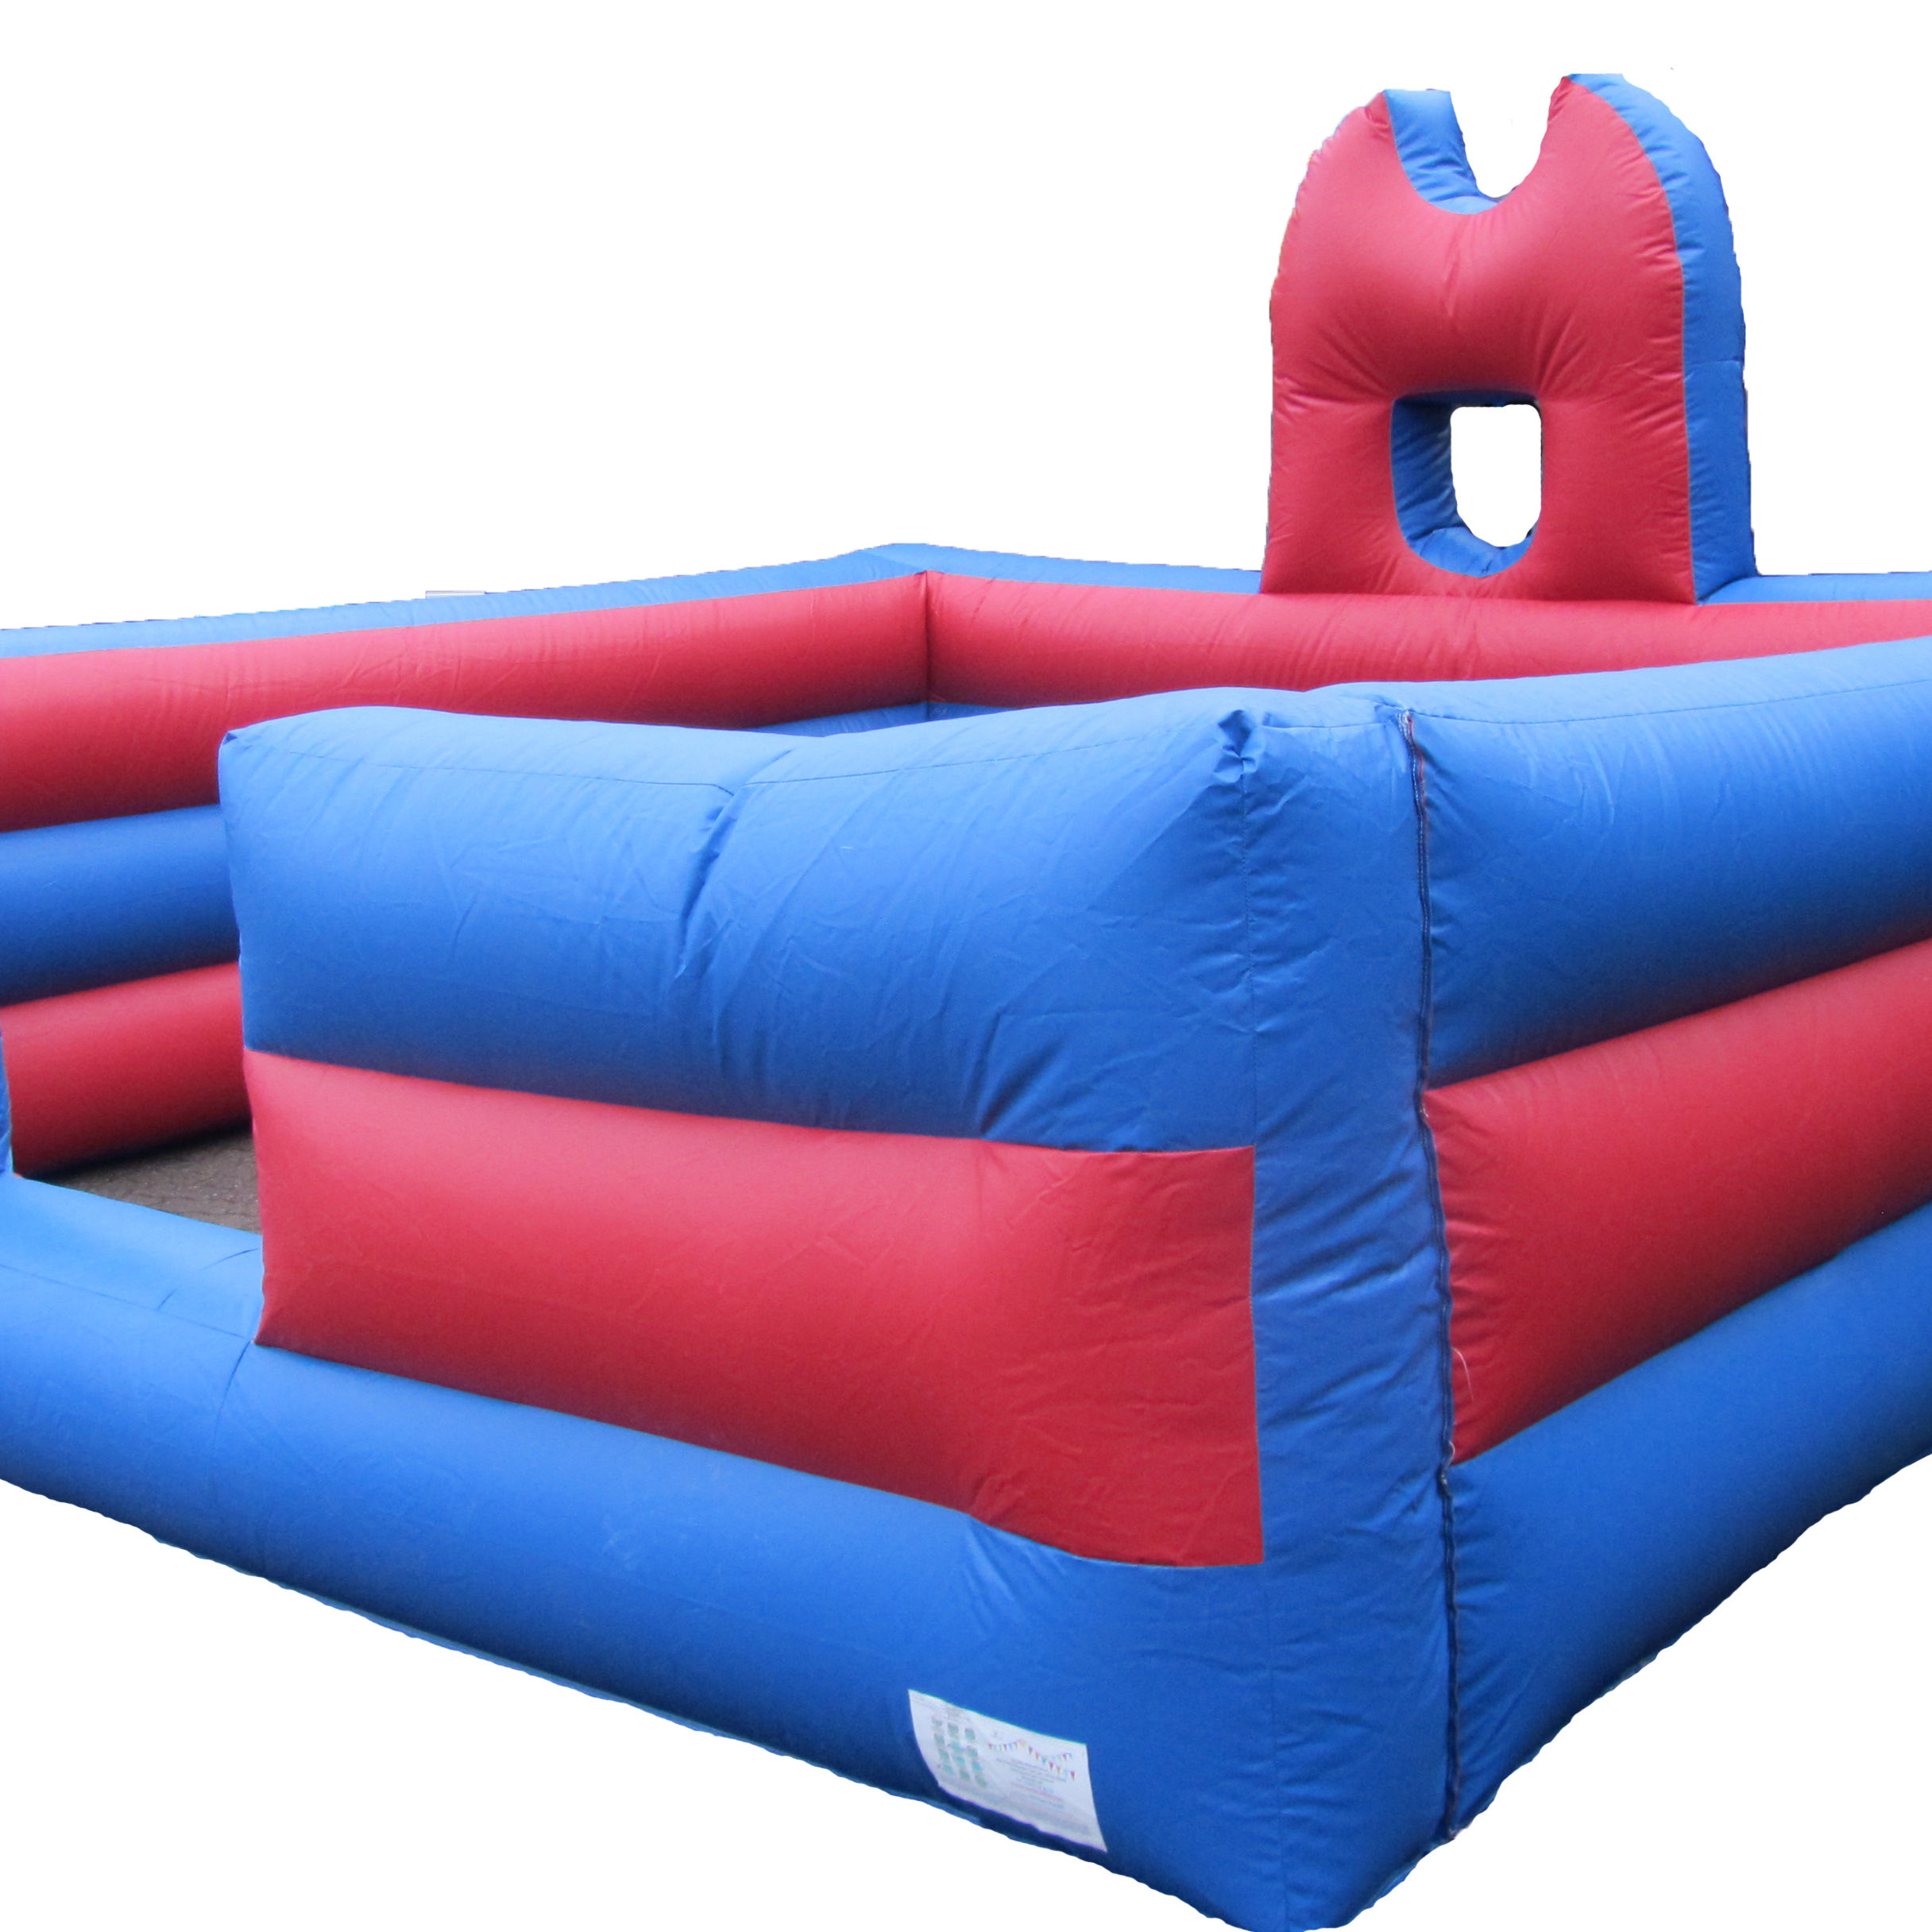 Super multi funktion aufblasbare gaga ball <span class=keywords><strong>pit</strong></span>, schaum kanone pool, aufblasbare meer ball air <span class=keywords><strong>pit</strong></span> verkauf